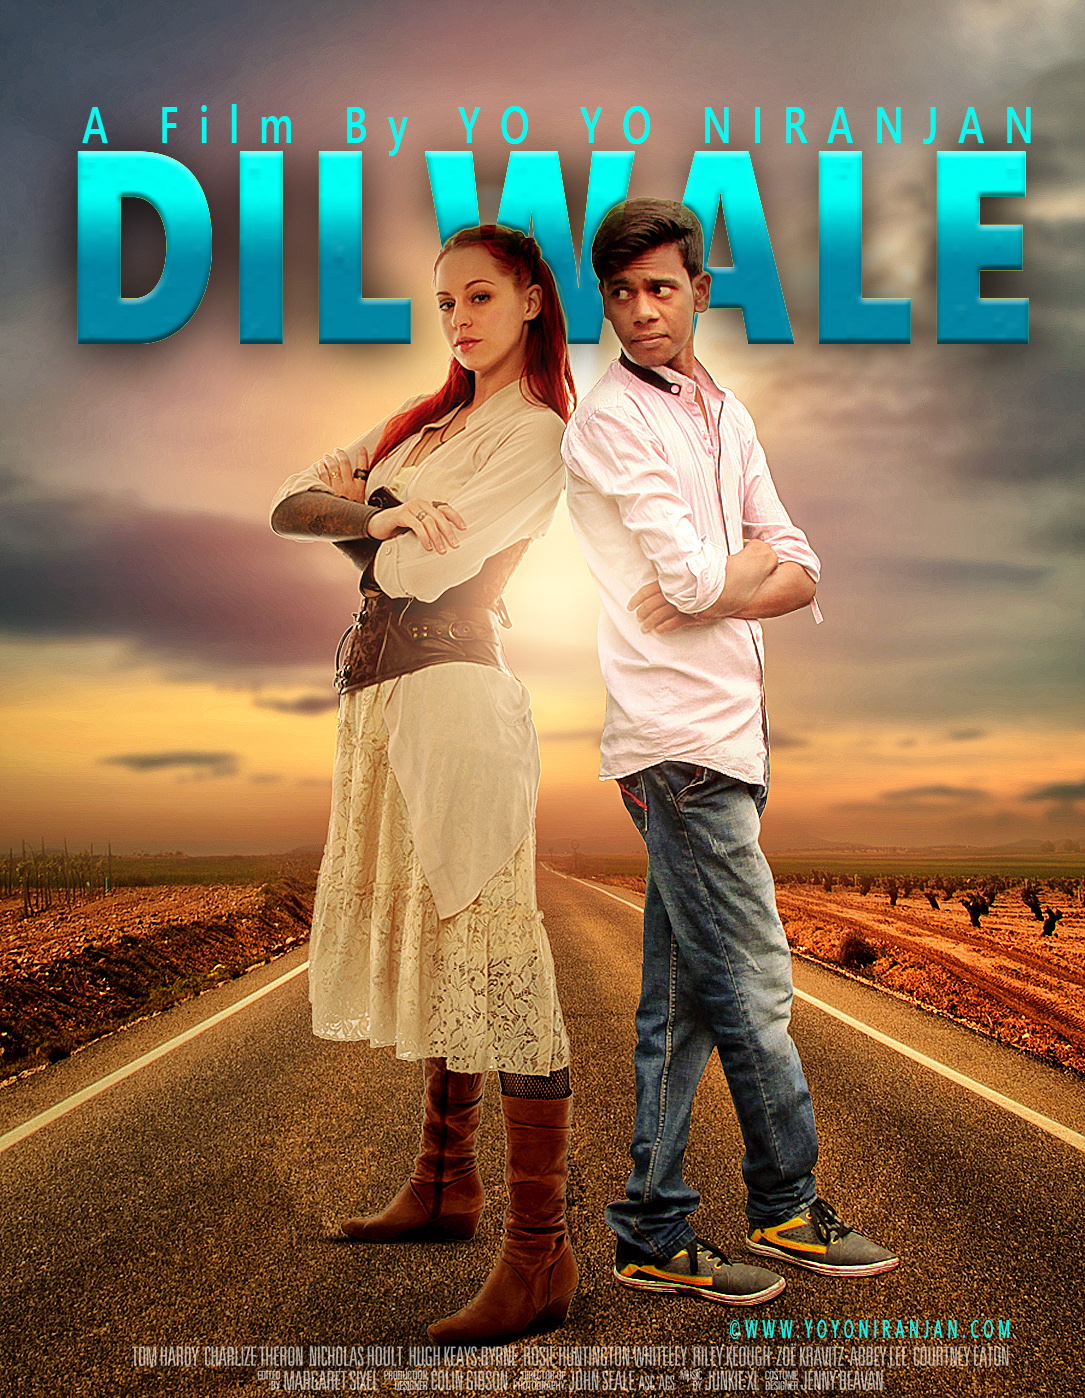 Photoshop tutorial making dilwale movie poster design yo yo niranjan photoshop tutorial making dilwale movie poster design baditri Gallery